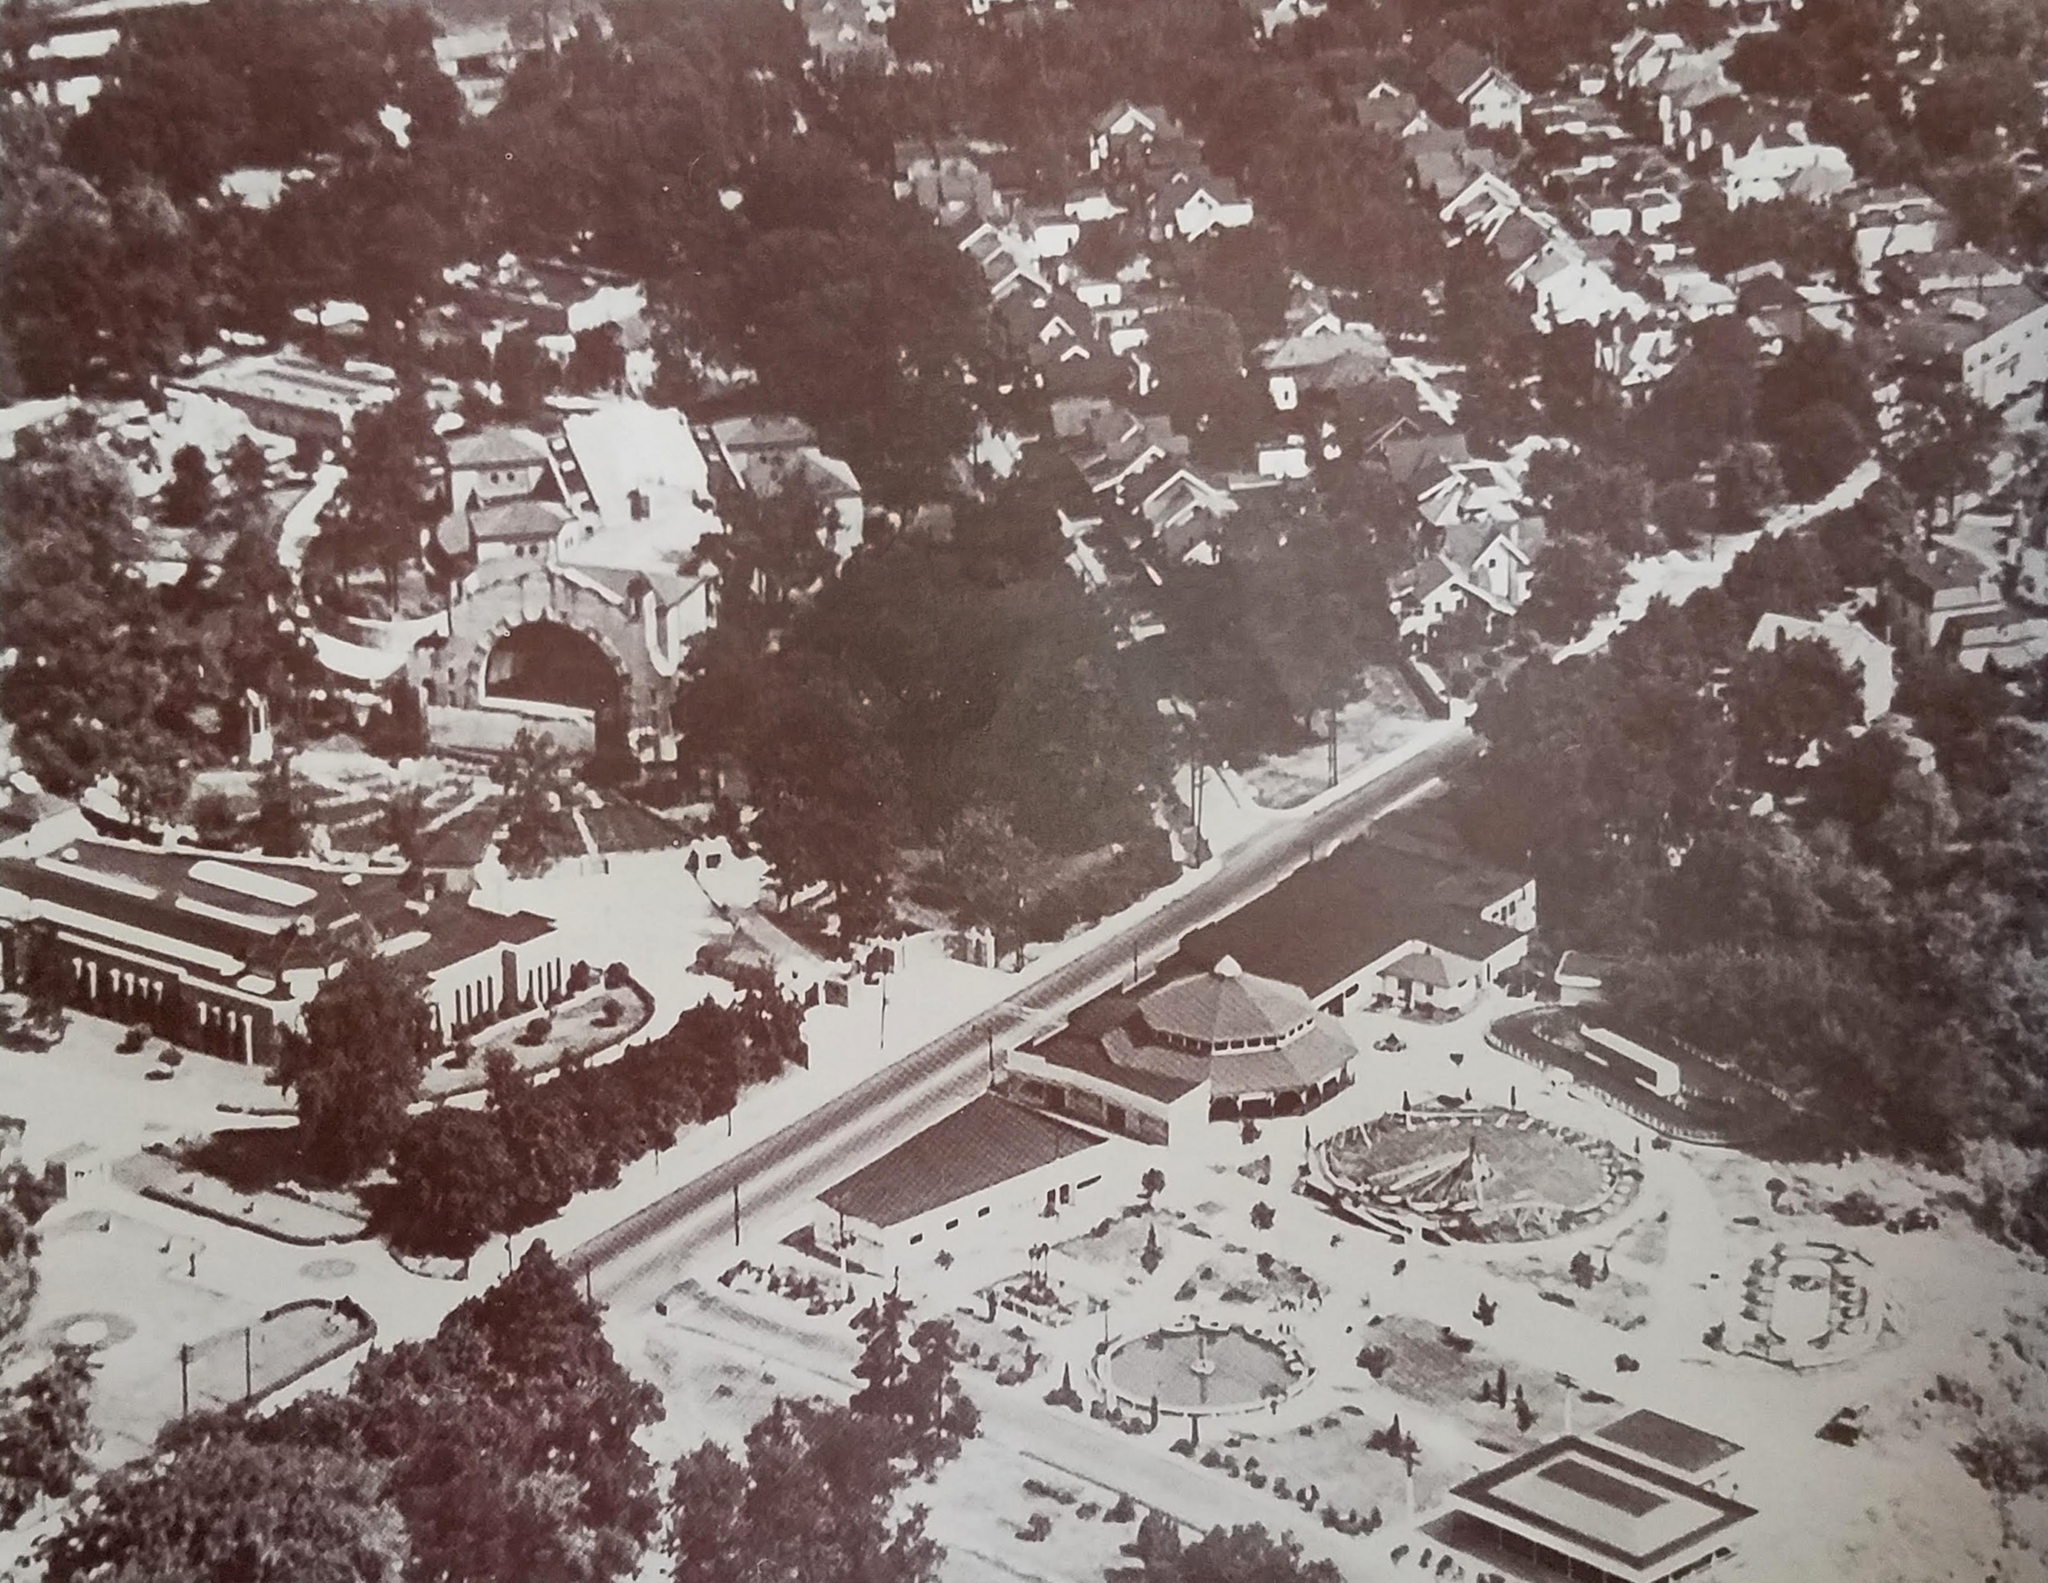 Walbridge Amusement Park in 1950